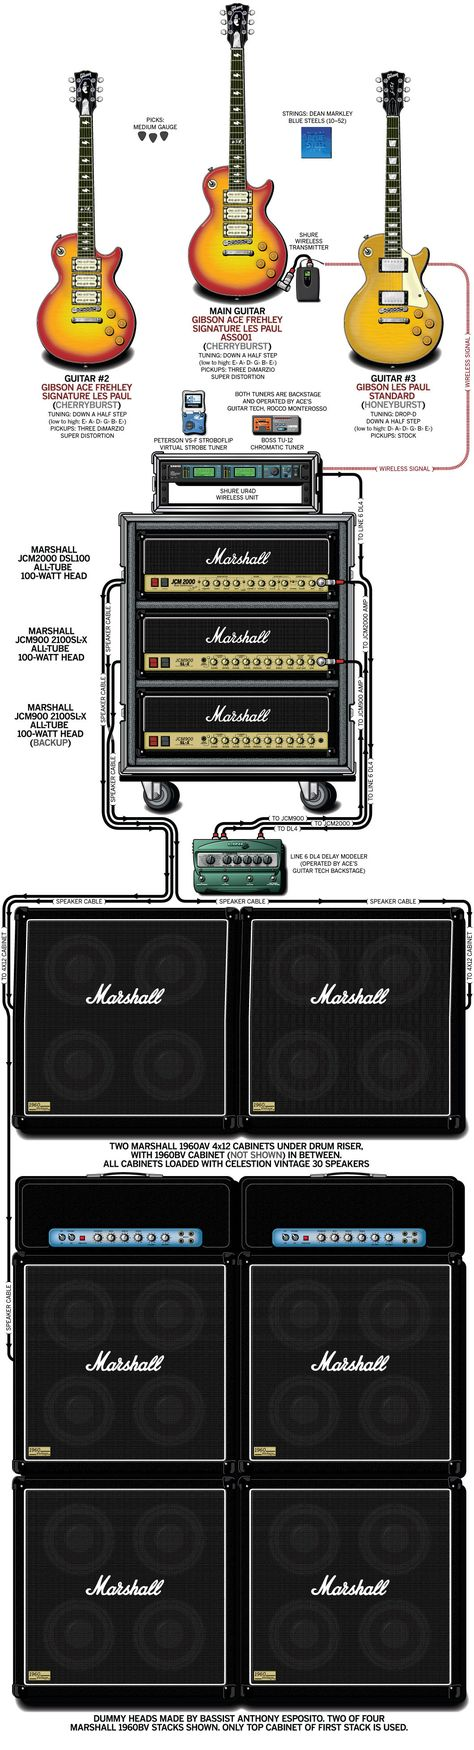 3B6 Ace Frehley Guitar Wiring Diagram | Wiring LibraryWiring Library